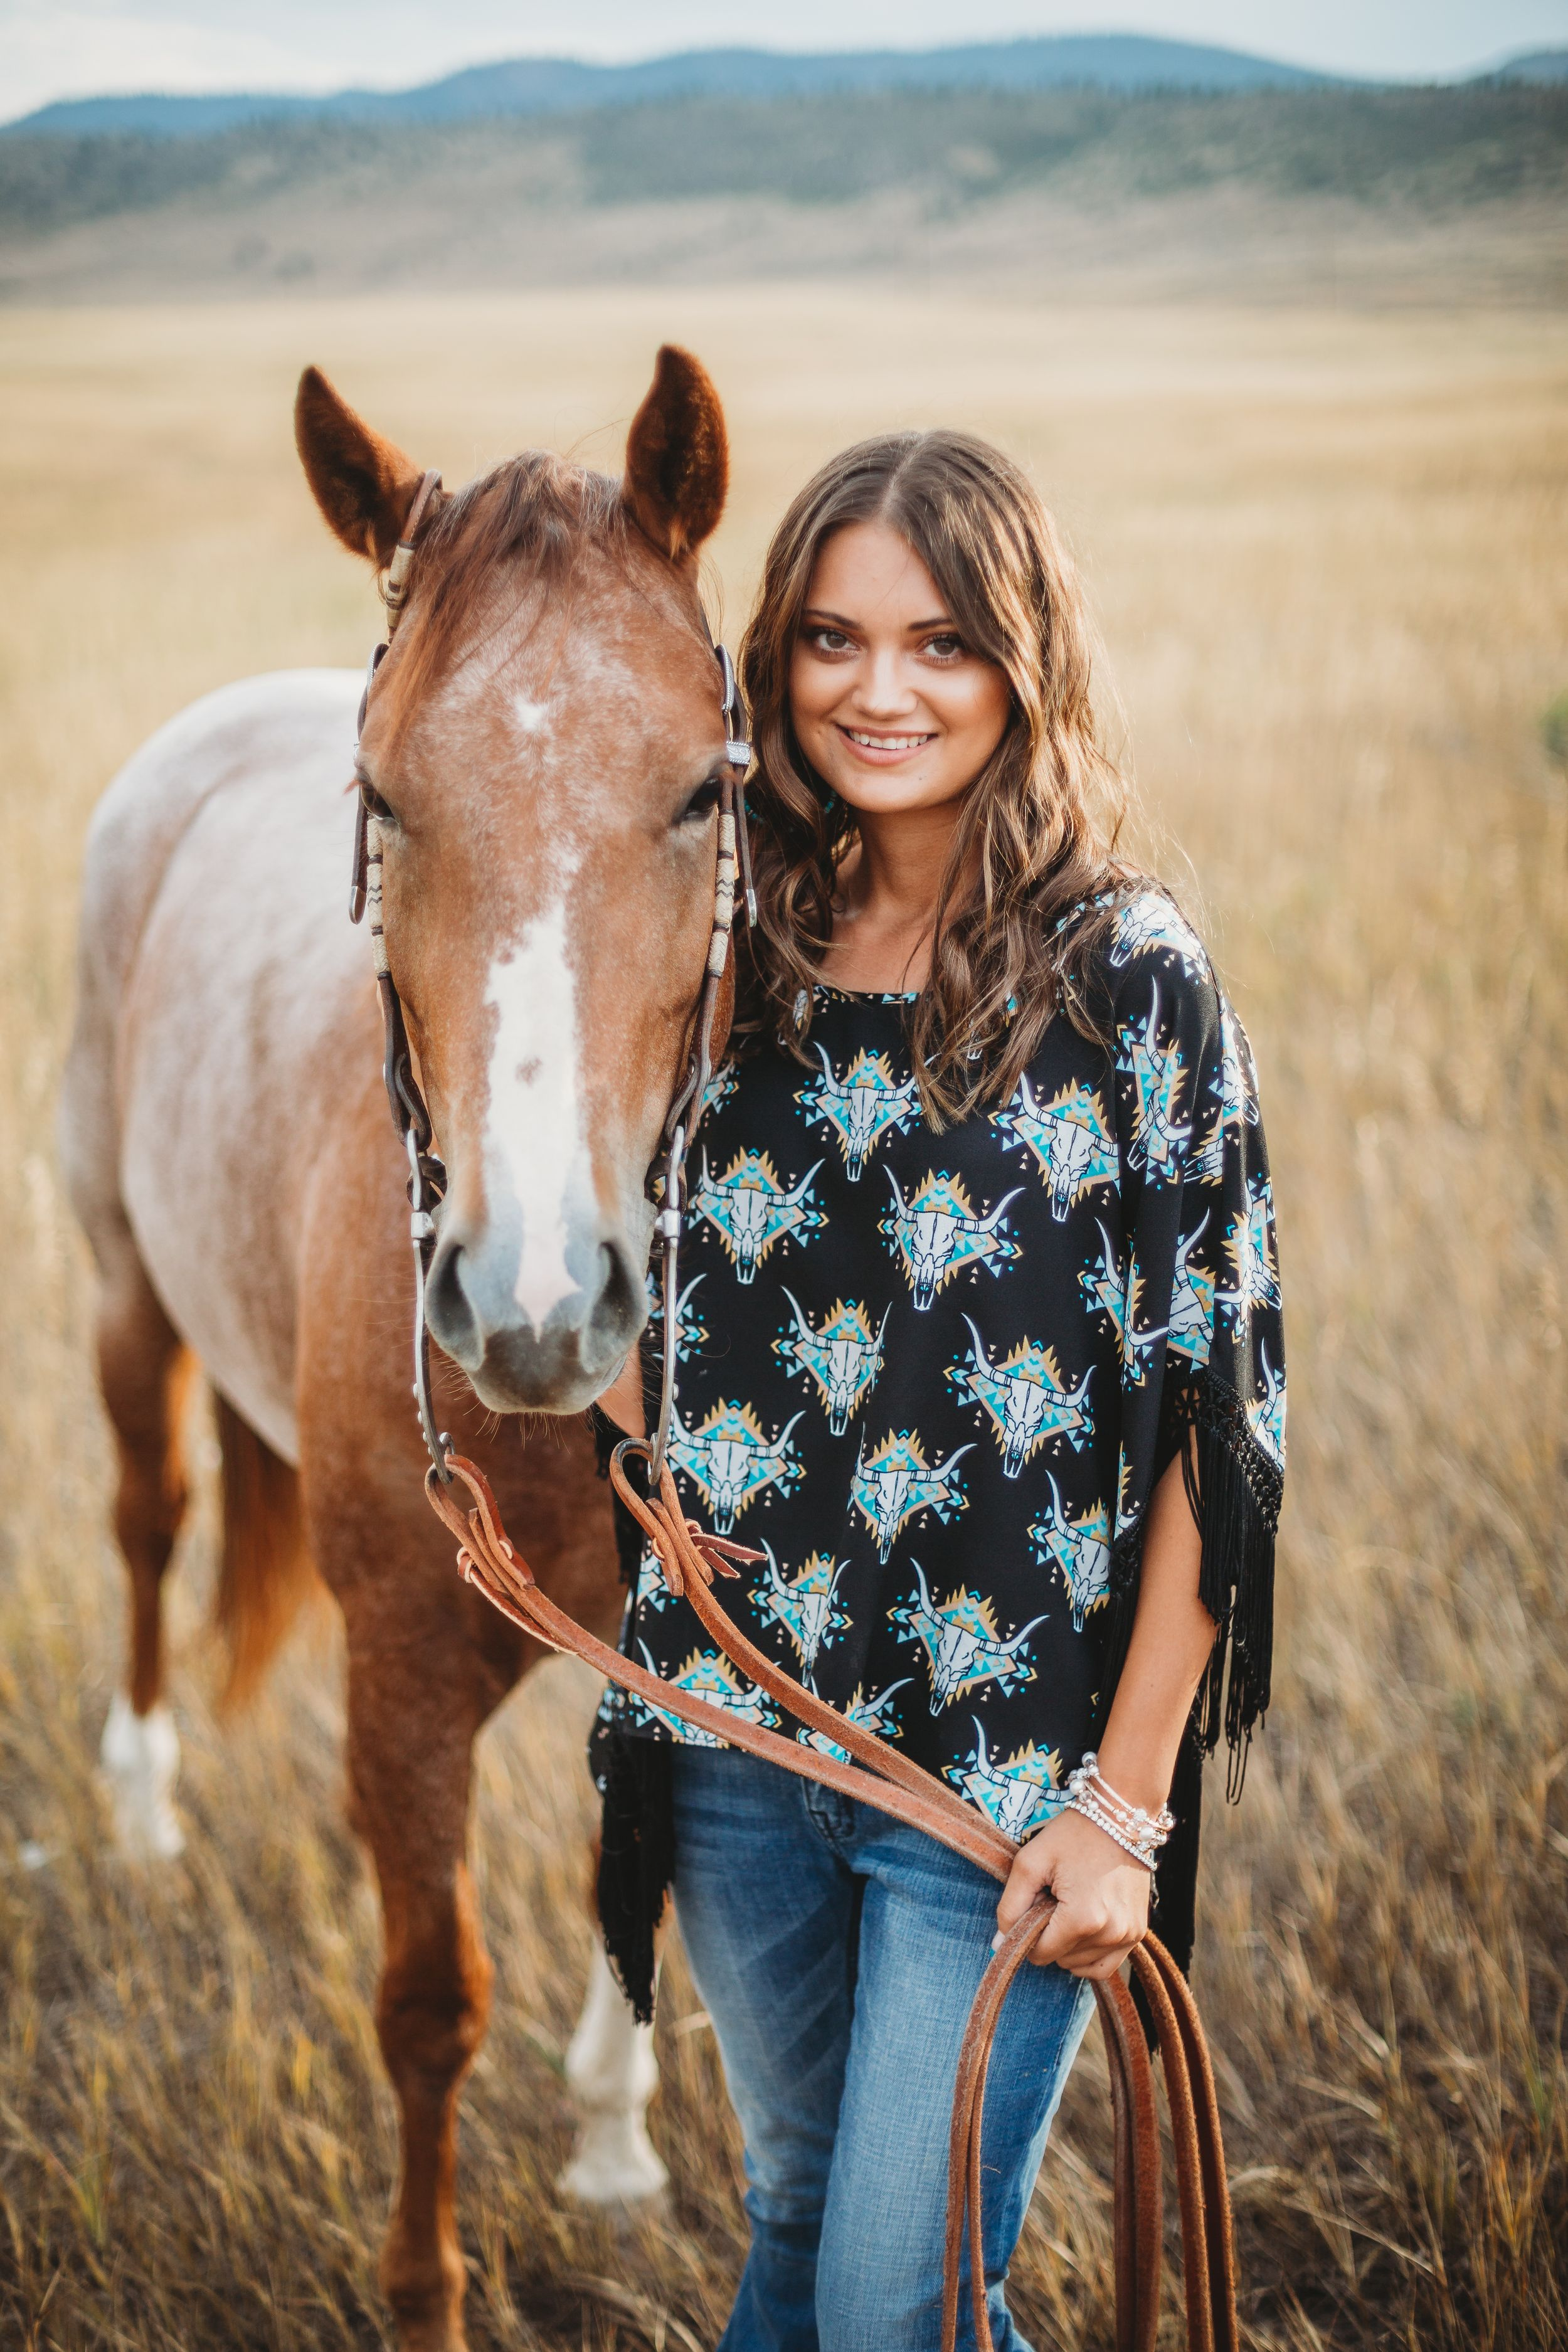 An Eaton High School senior poses for a photo with her horse during a Senior Photography Session at Reservoir Ridge.